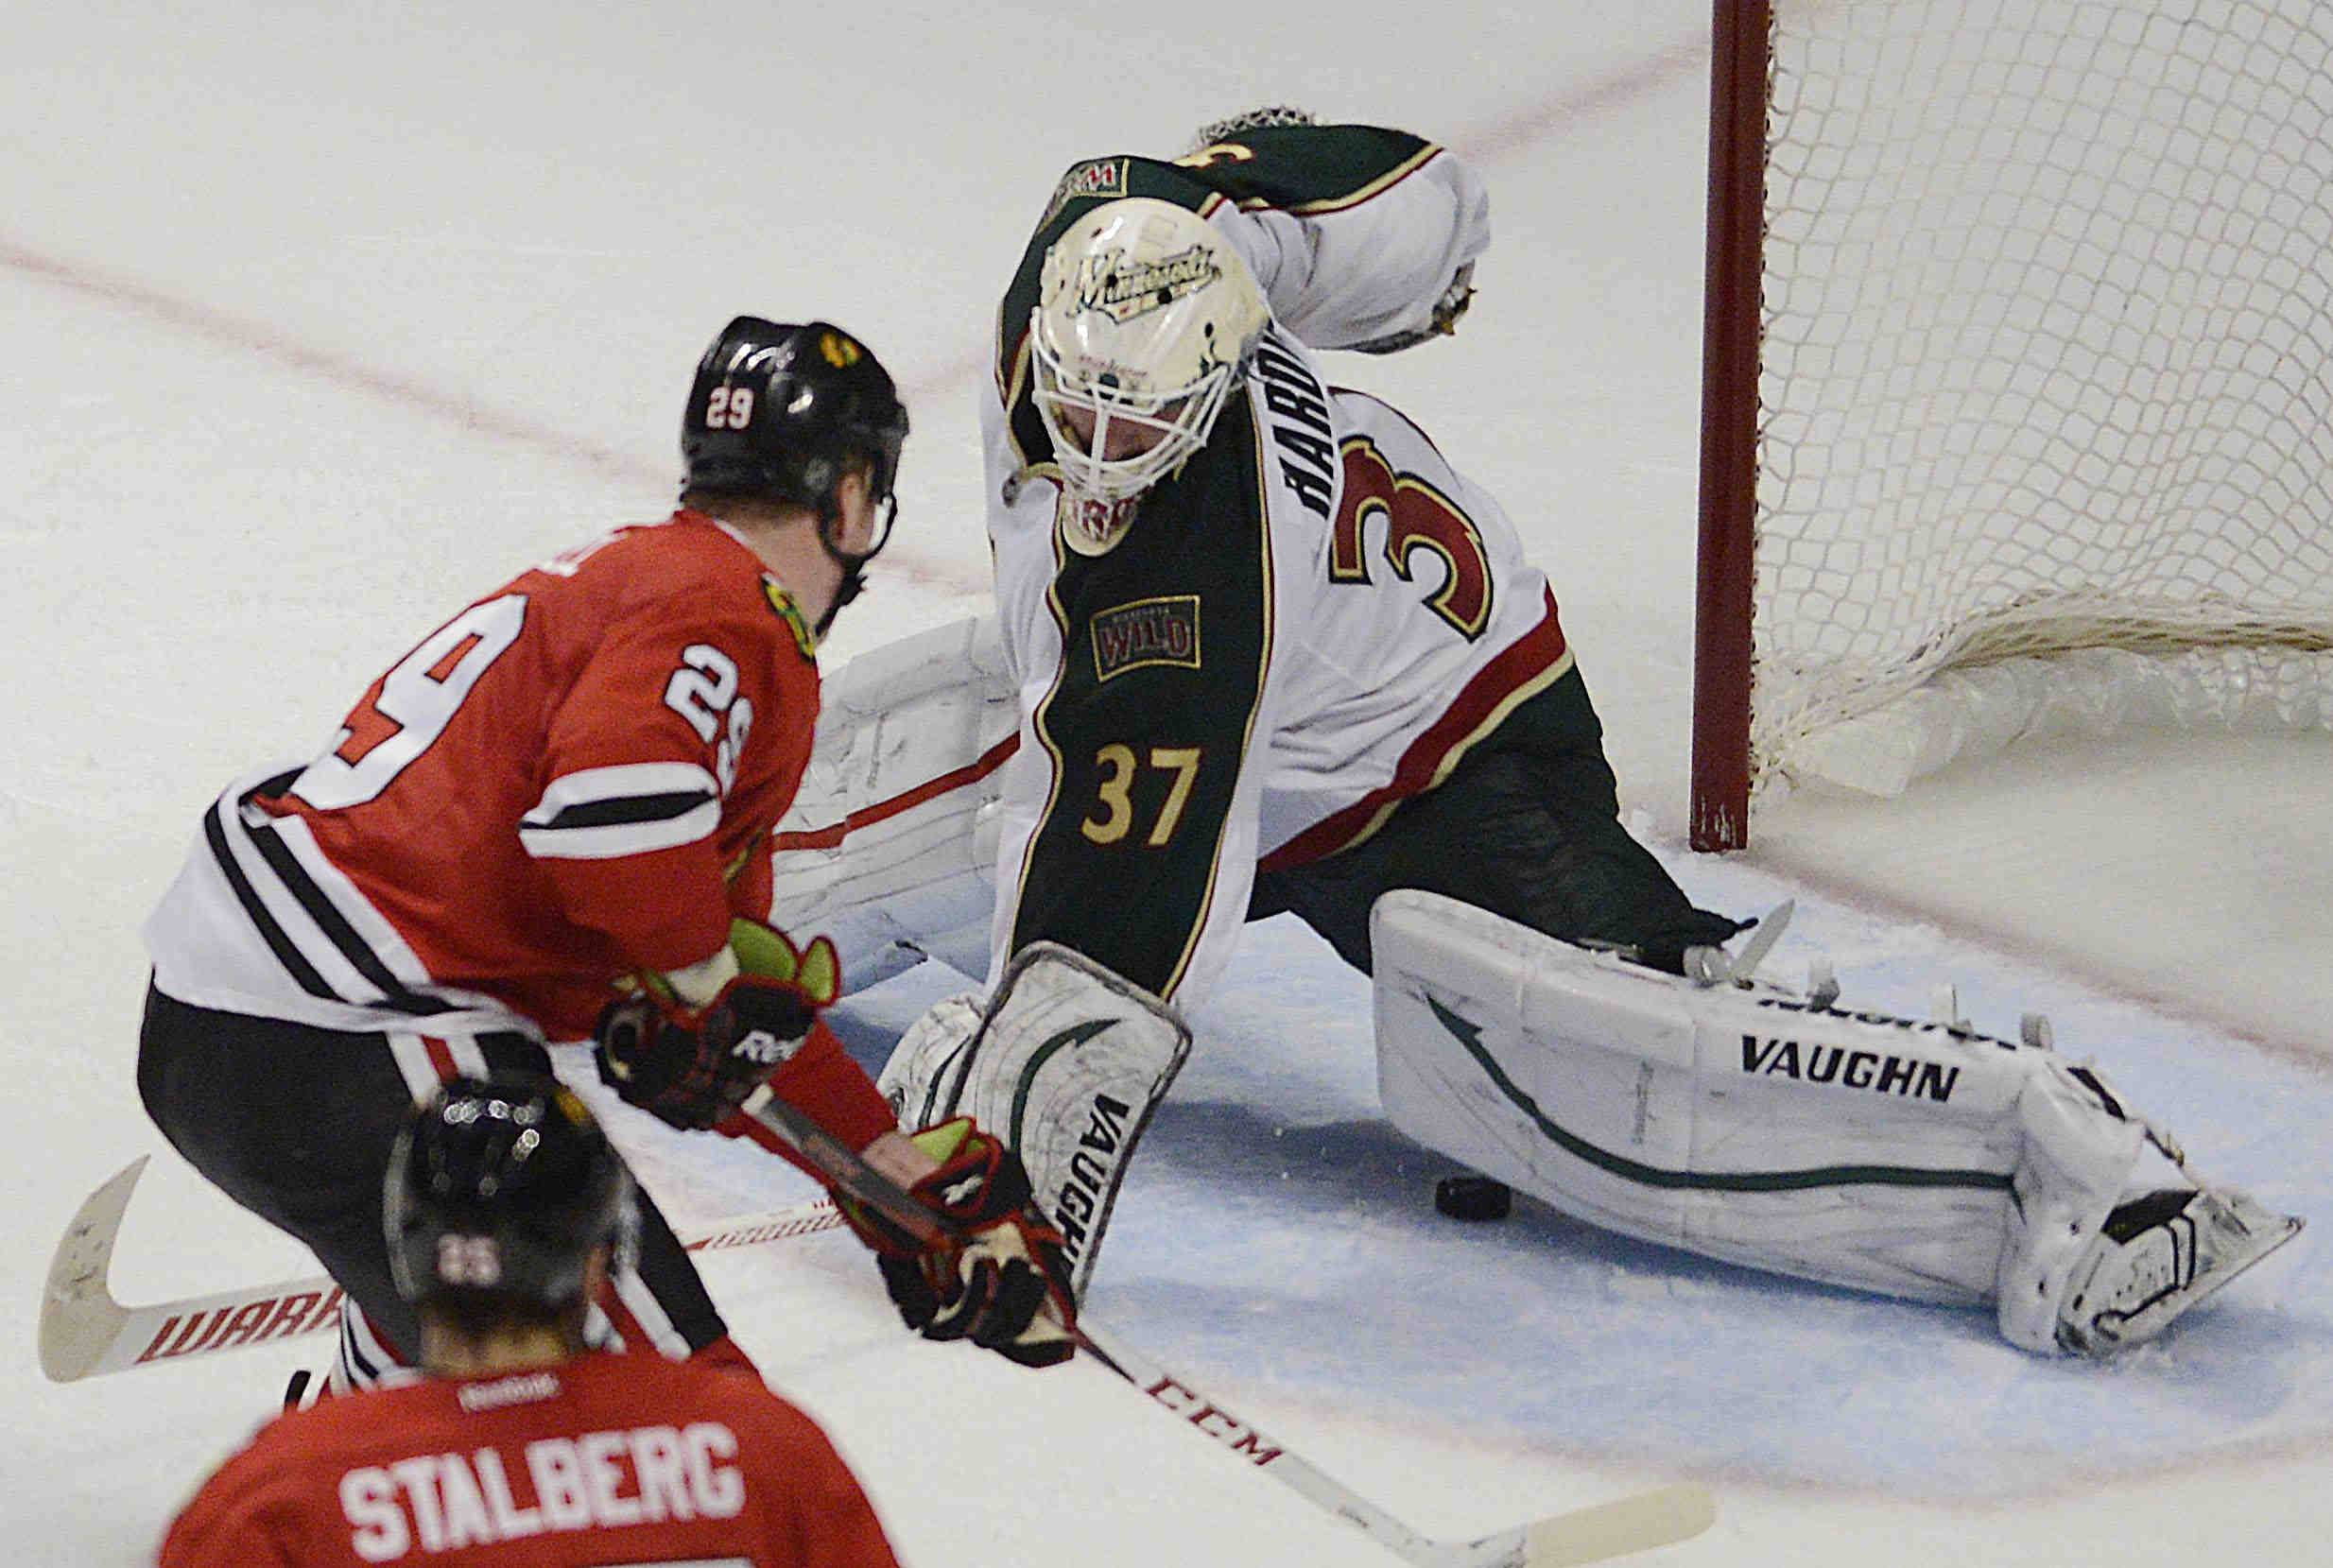 Chicago Blackhawks left wing Bryan Bickell slips the puck under the knee of Minnesota Wild goalie Josh Harding in overtime for the win Tuesday in Game 1 of the Western Conference first-round playoff series at the United Center in Chicago.